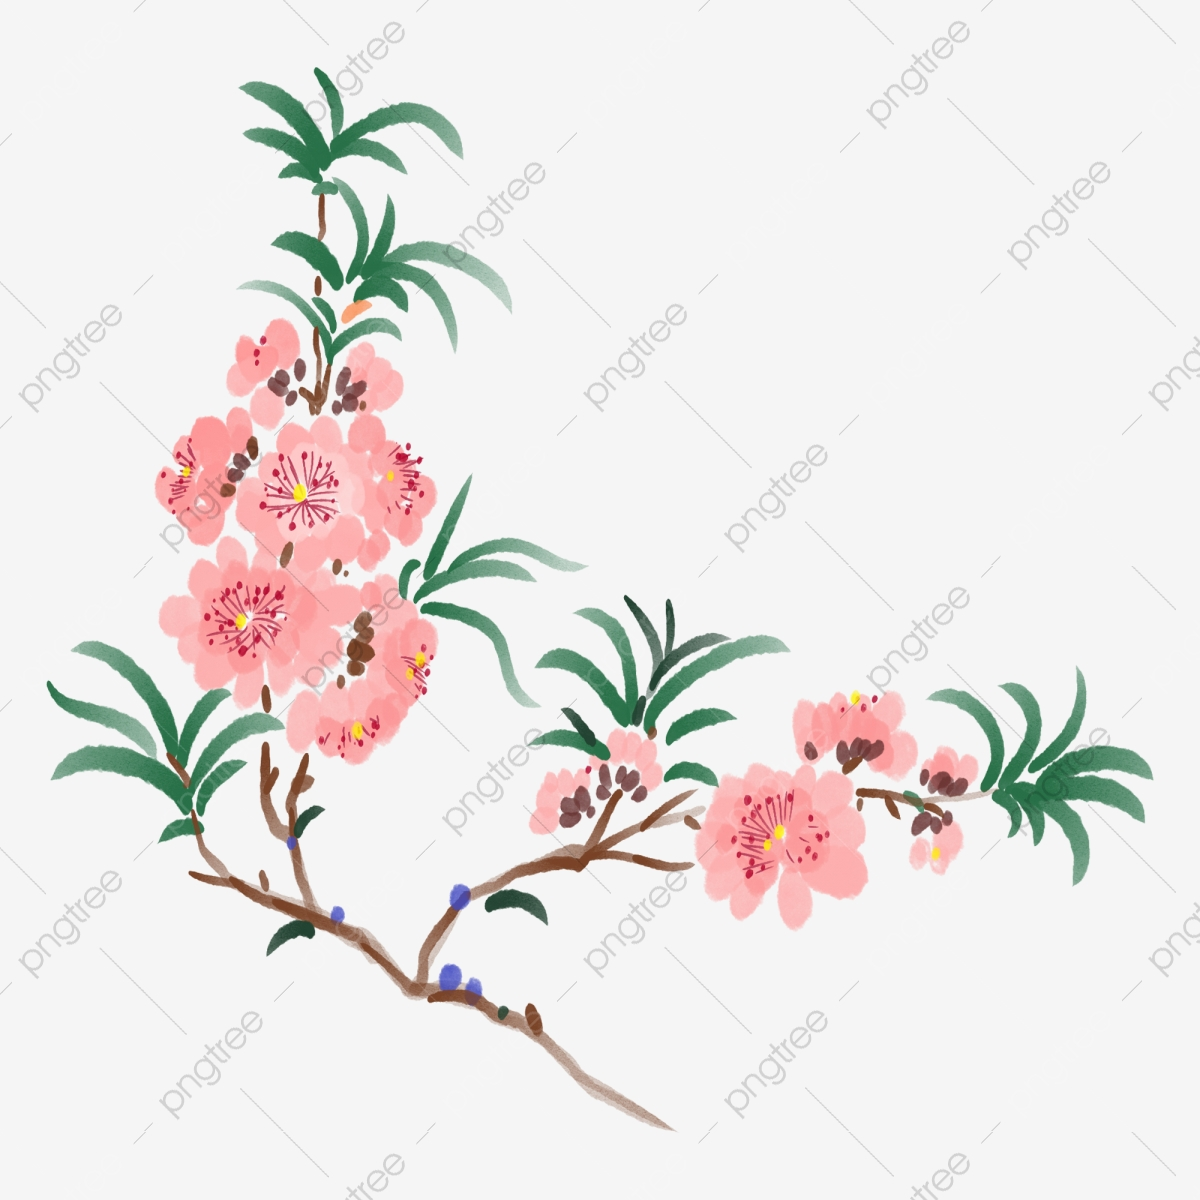 Spring Flowers Blooming Cherry Blossoms Beautiful Cherry